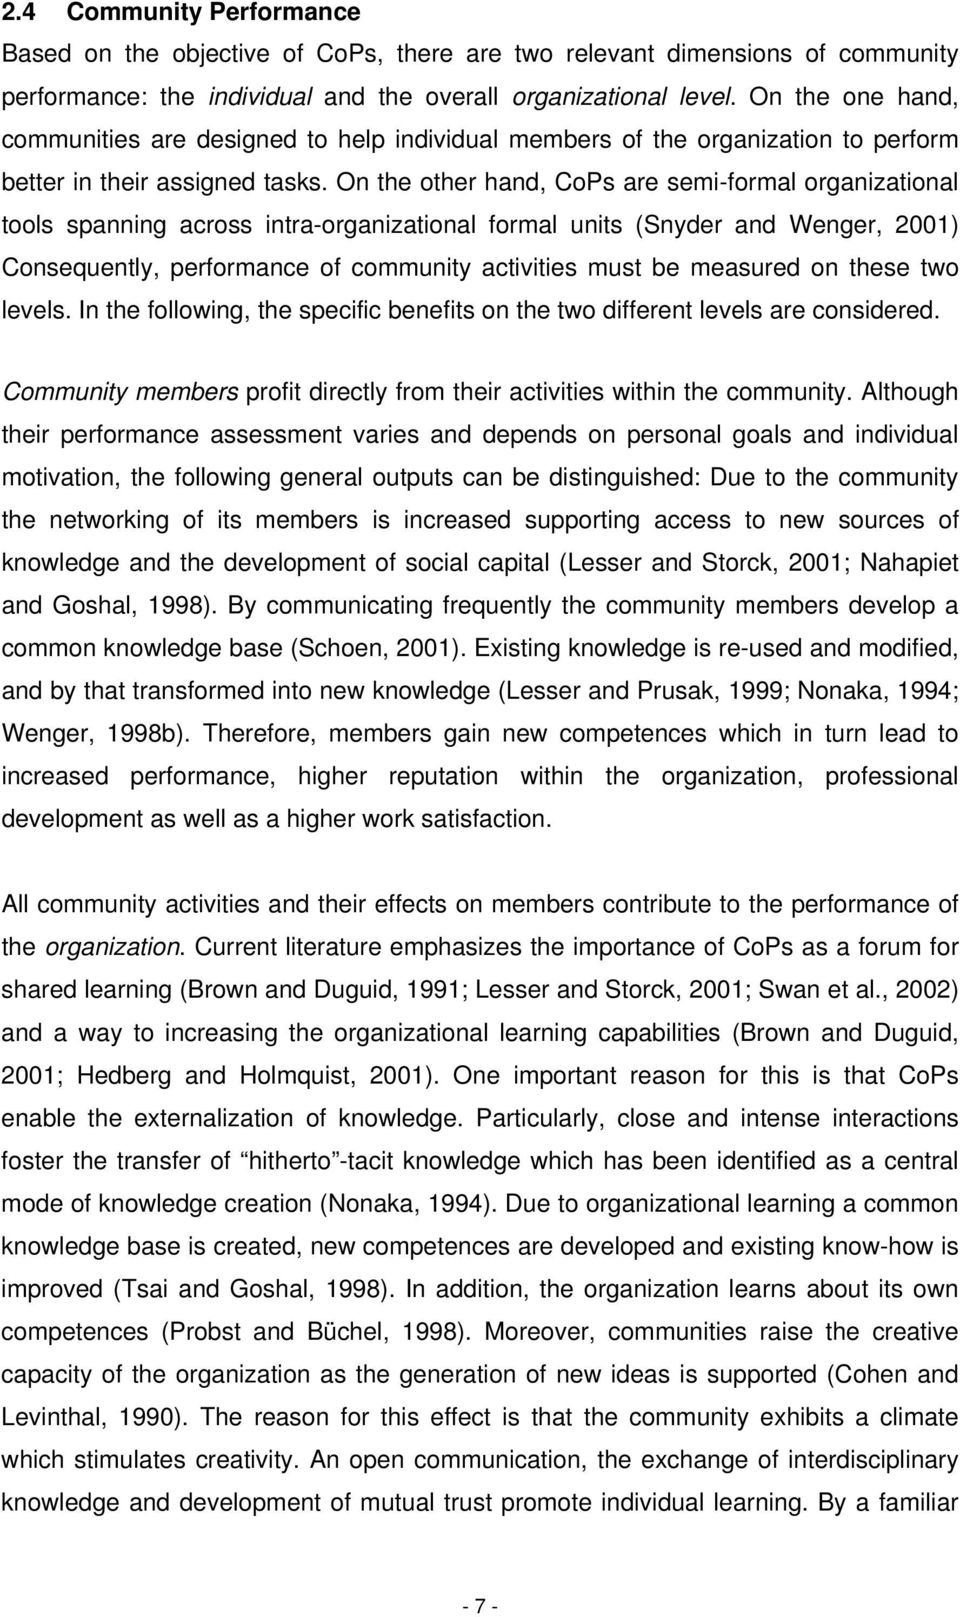 On the other hand, CoPs are semi-formal organizational tools spanning across intra-organizational formal units (Snyder and Wenger, 2001) Consequently, performance of community activities must be